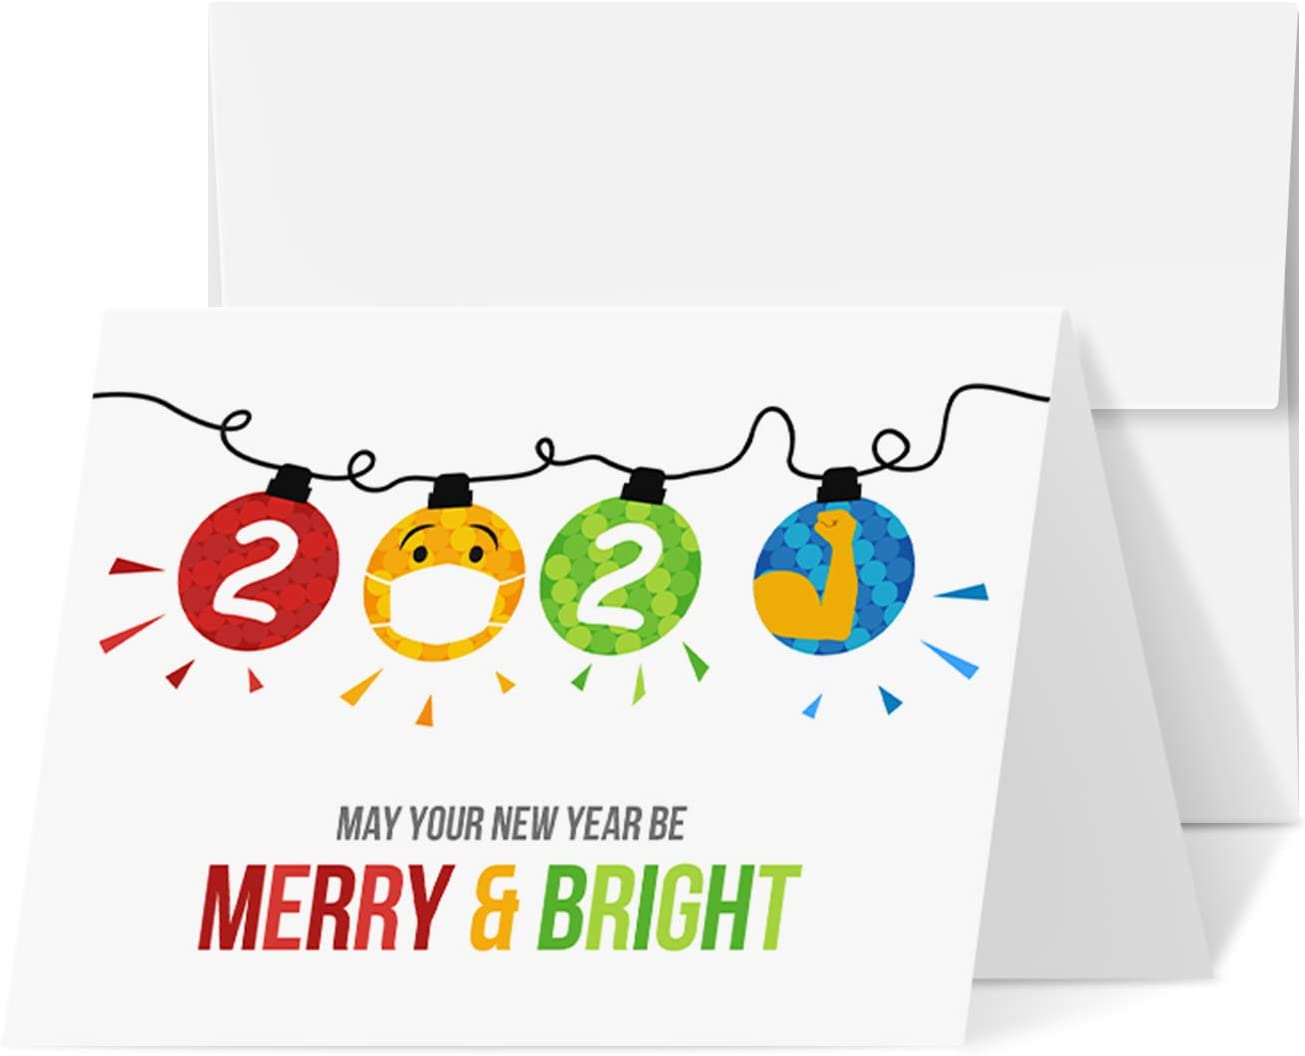 Best Gift Cards For Christmas 2021 Amazon Com 2021 Merry Christmas Happy New Year Holiday Greeting Cards Blank Fold Over Cards Envelopes Funny Emoji Cards For New Year S Gift Presents 25 Per Pack